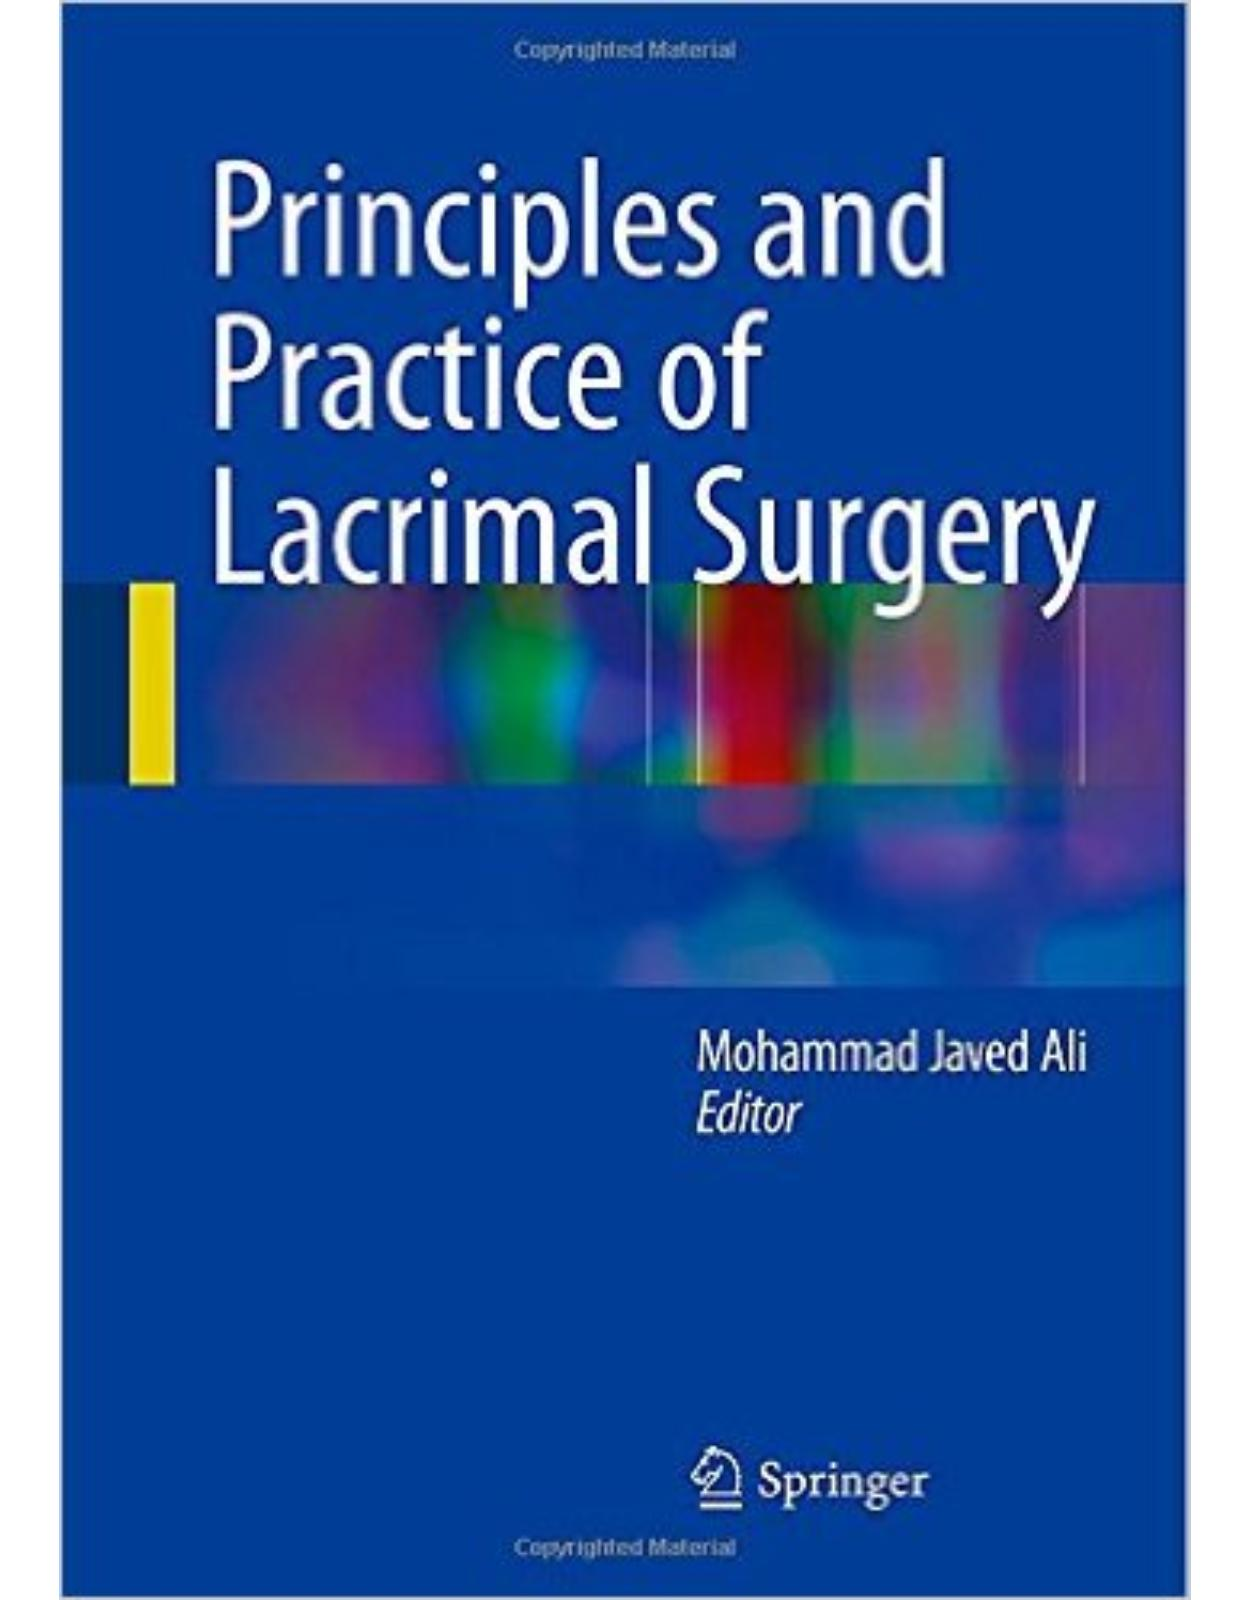 Principles and Practice of Lacrimal Surgery 2015th Edition